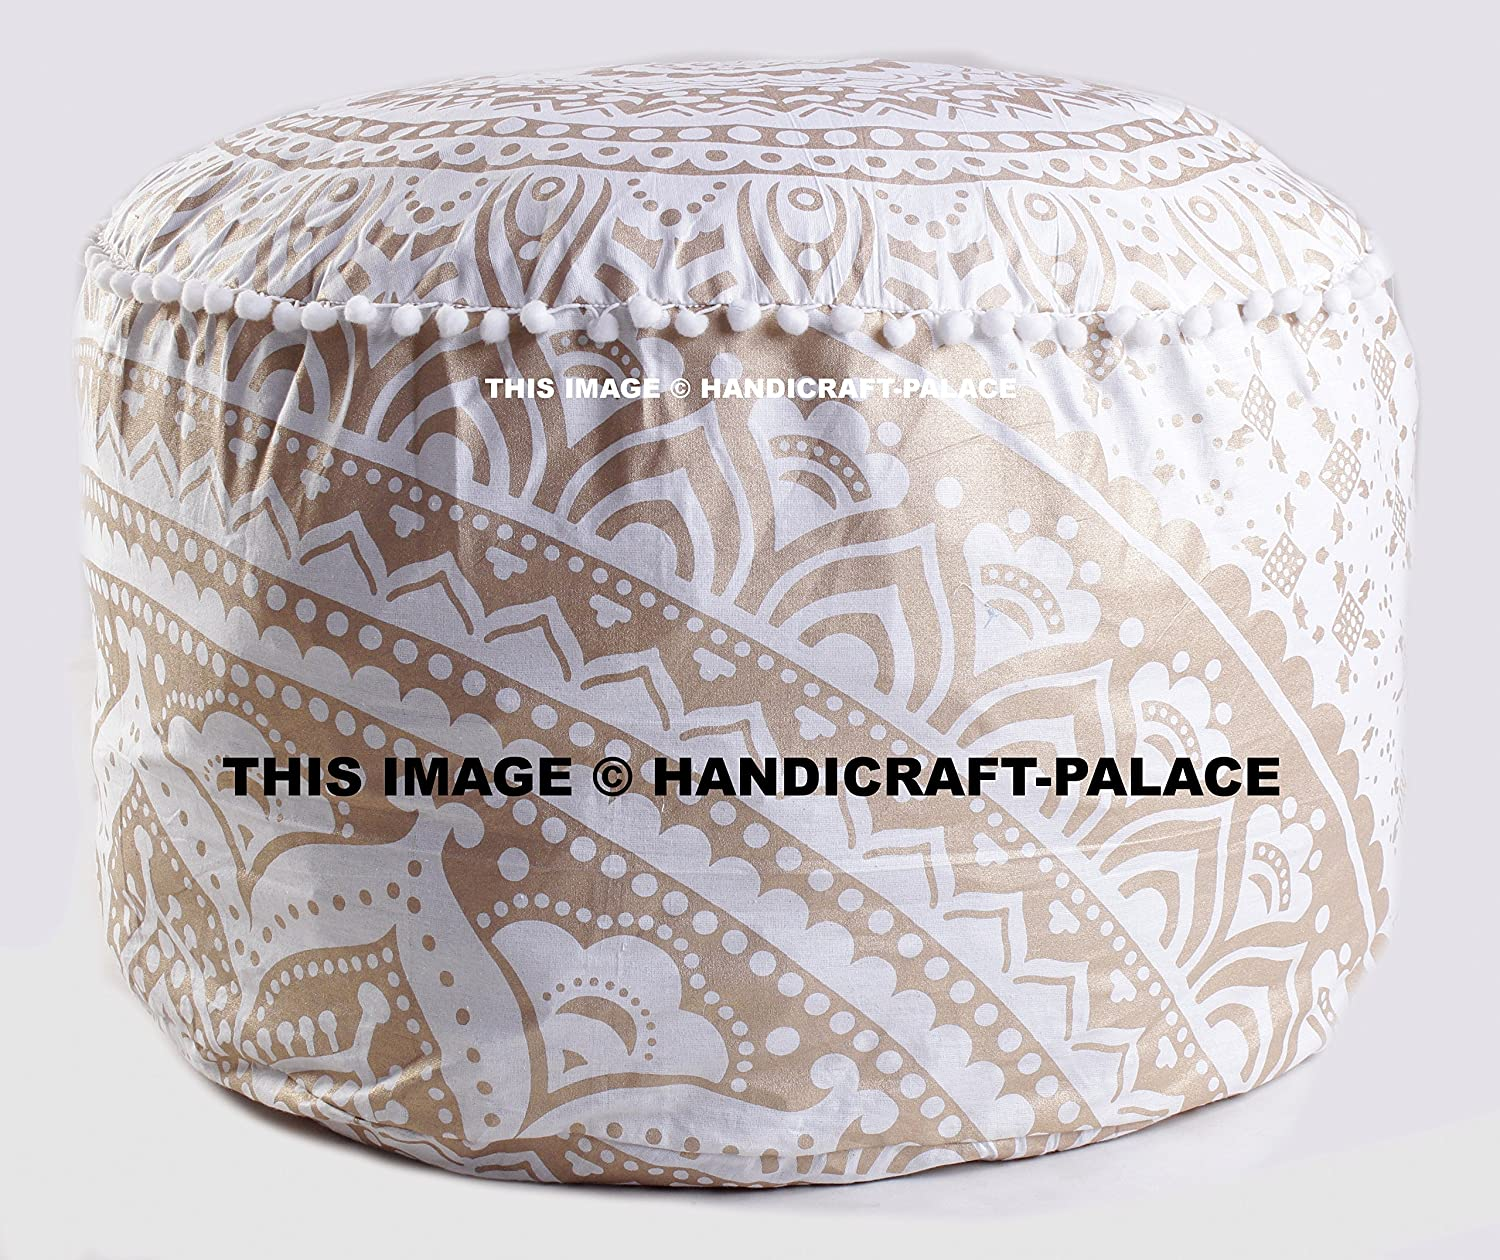 Ombre Mandala Round Floor Ottoman Pouf Gold Colored Pillow Cover Indian Decor Handicraft-Palace MOS-18